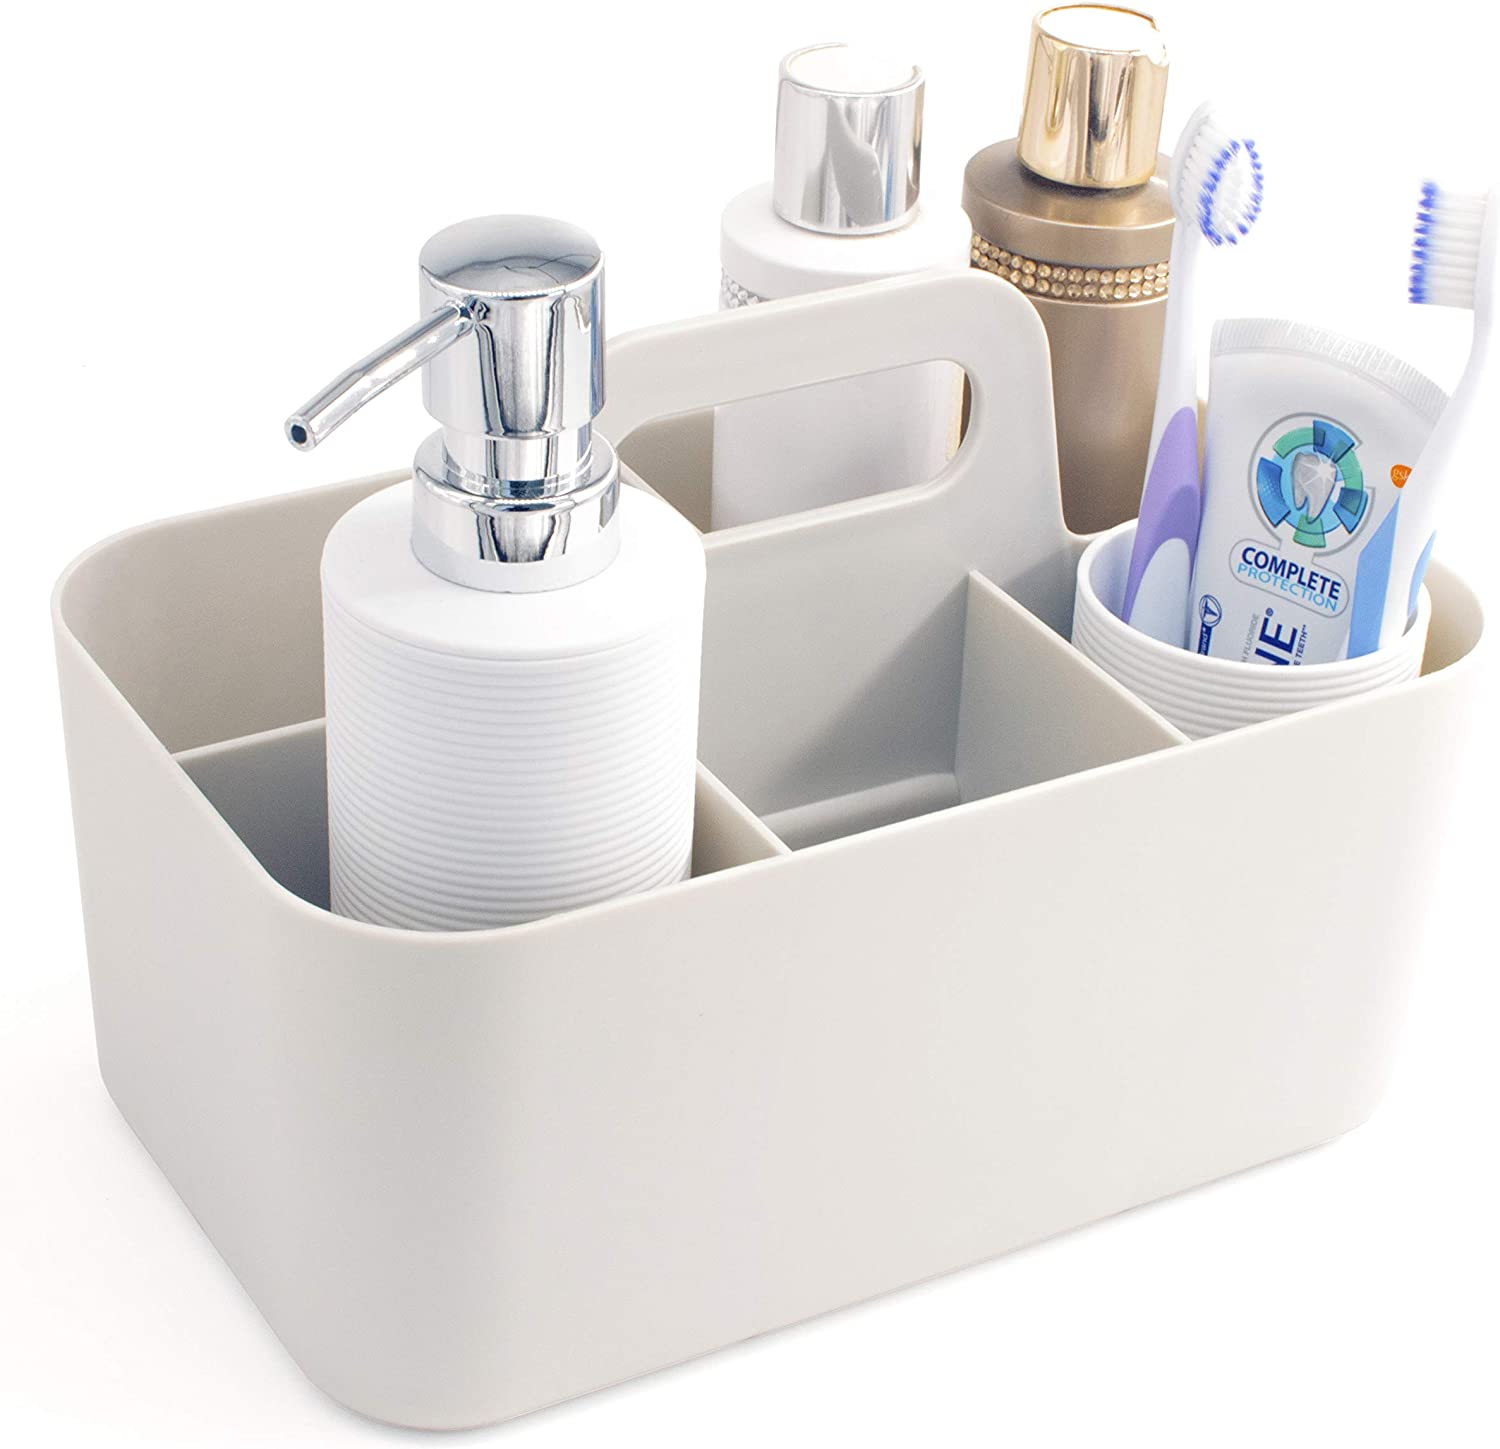 Lib Bathroom Caddy Organizer – Portable Plastic Storage Tote – Shower Toiletries Caddy – Divided Gray Basket – Utility Organizer for Women and Men – Ideal for Dorms, Vanities, and Kitchens